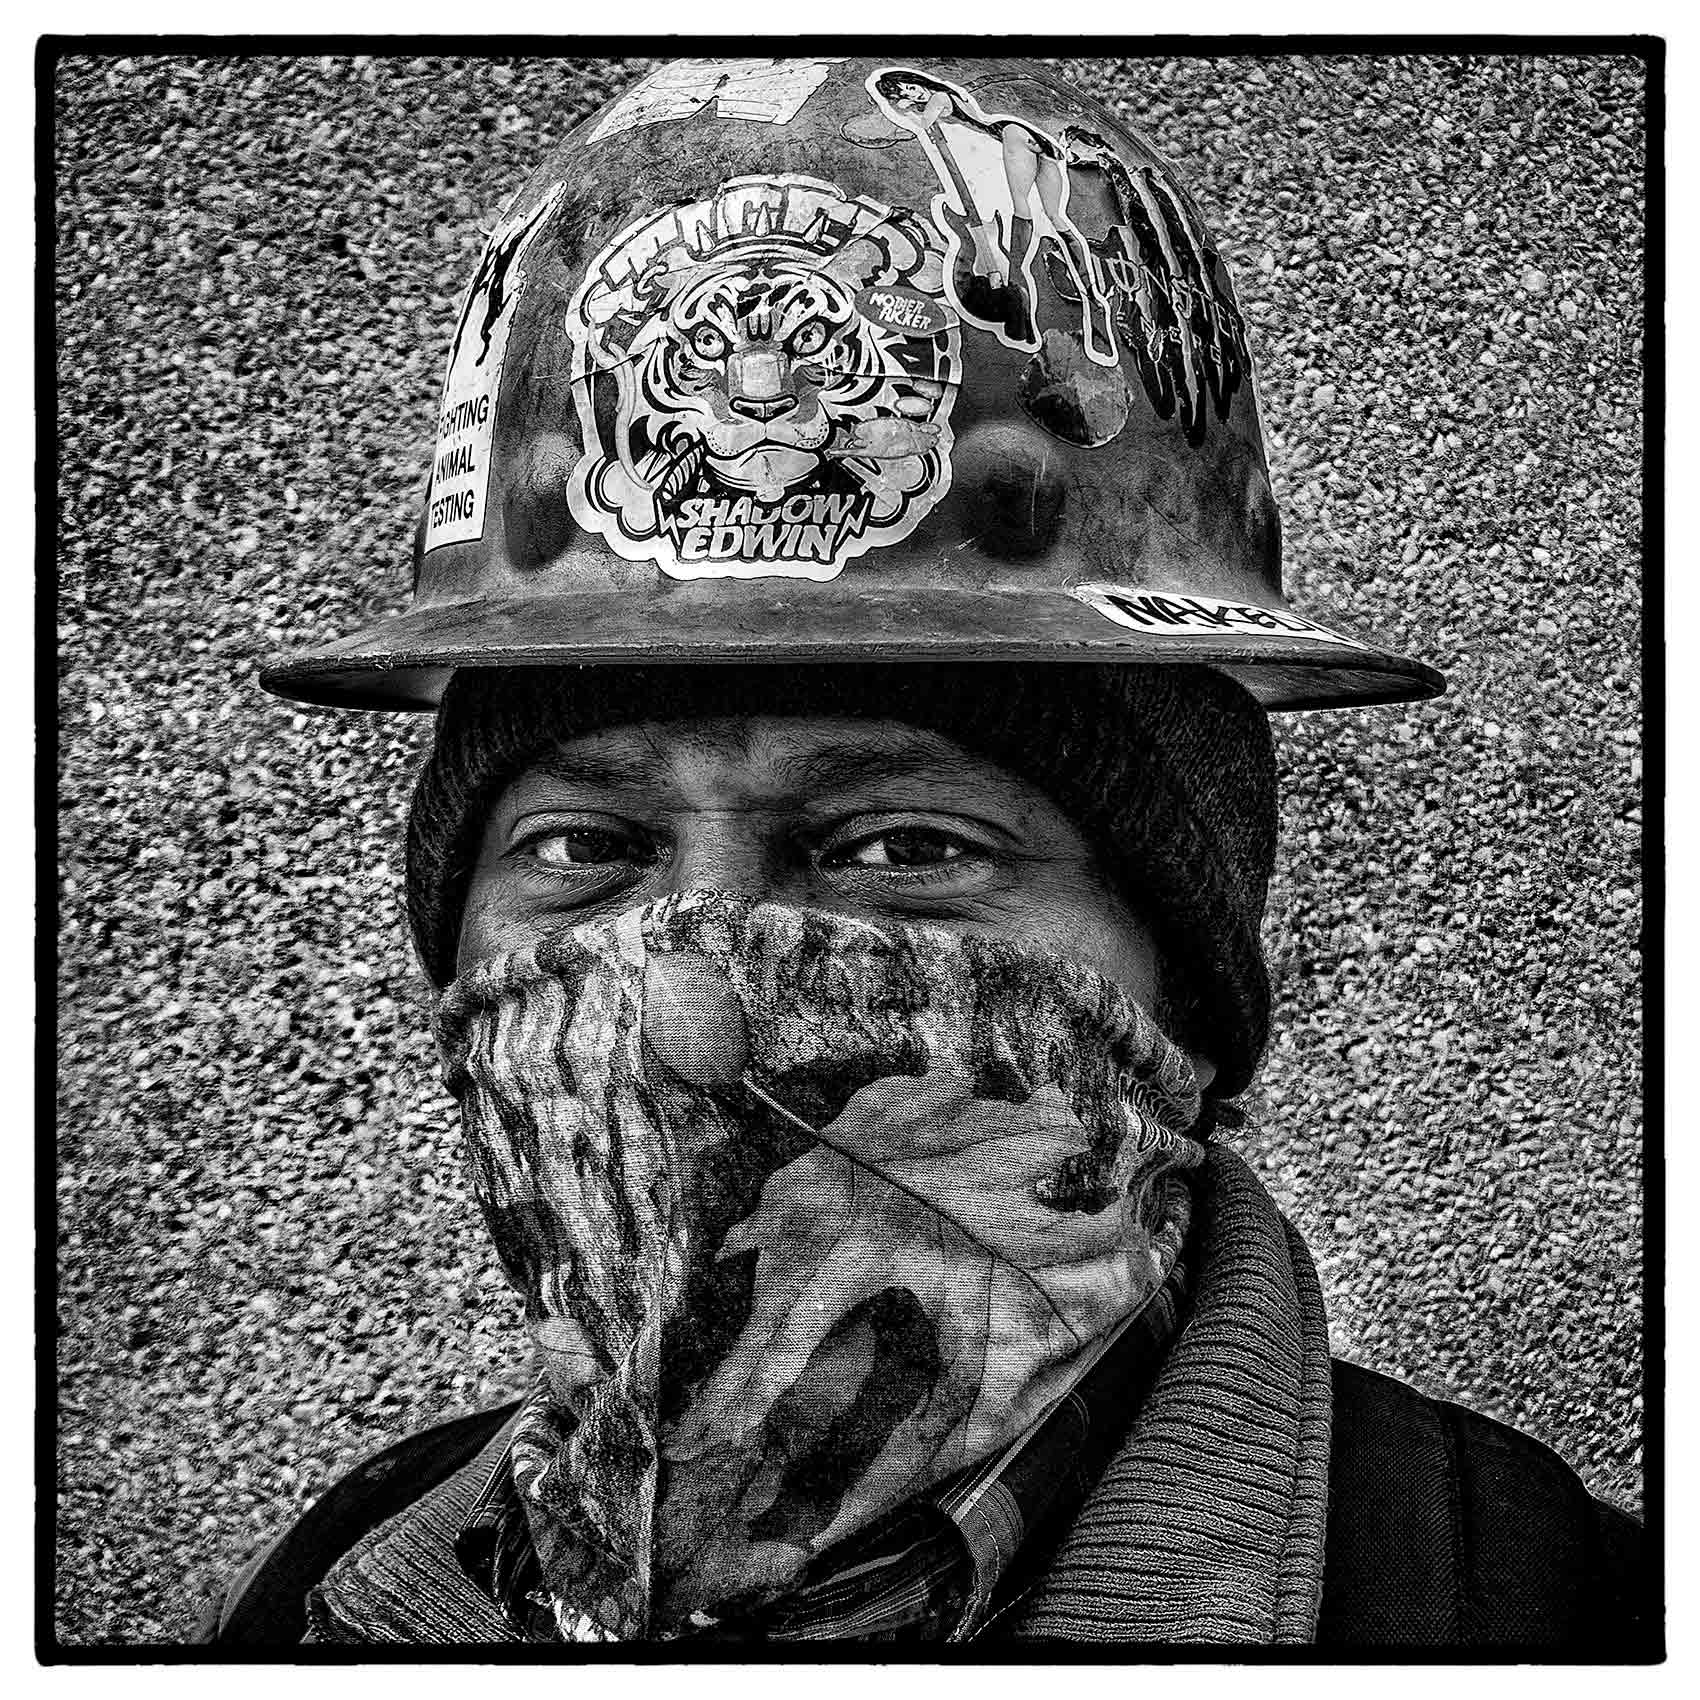 a-construction-worker-wears-a-mask-during-the-pandemic-in-toronto